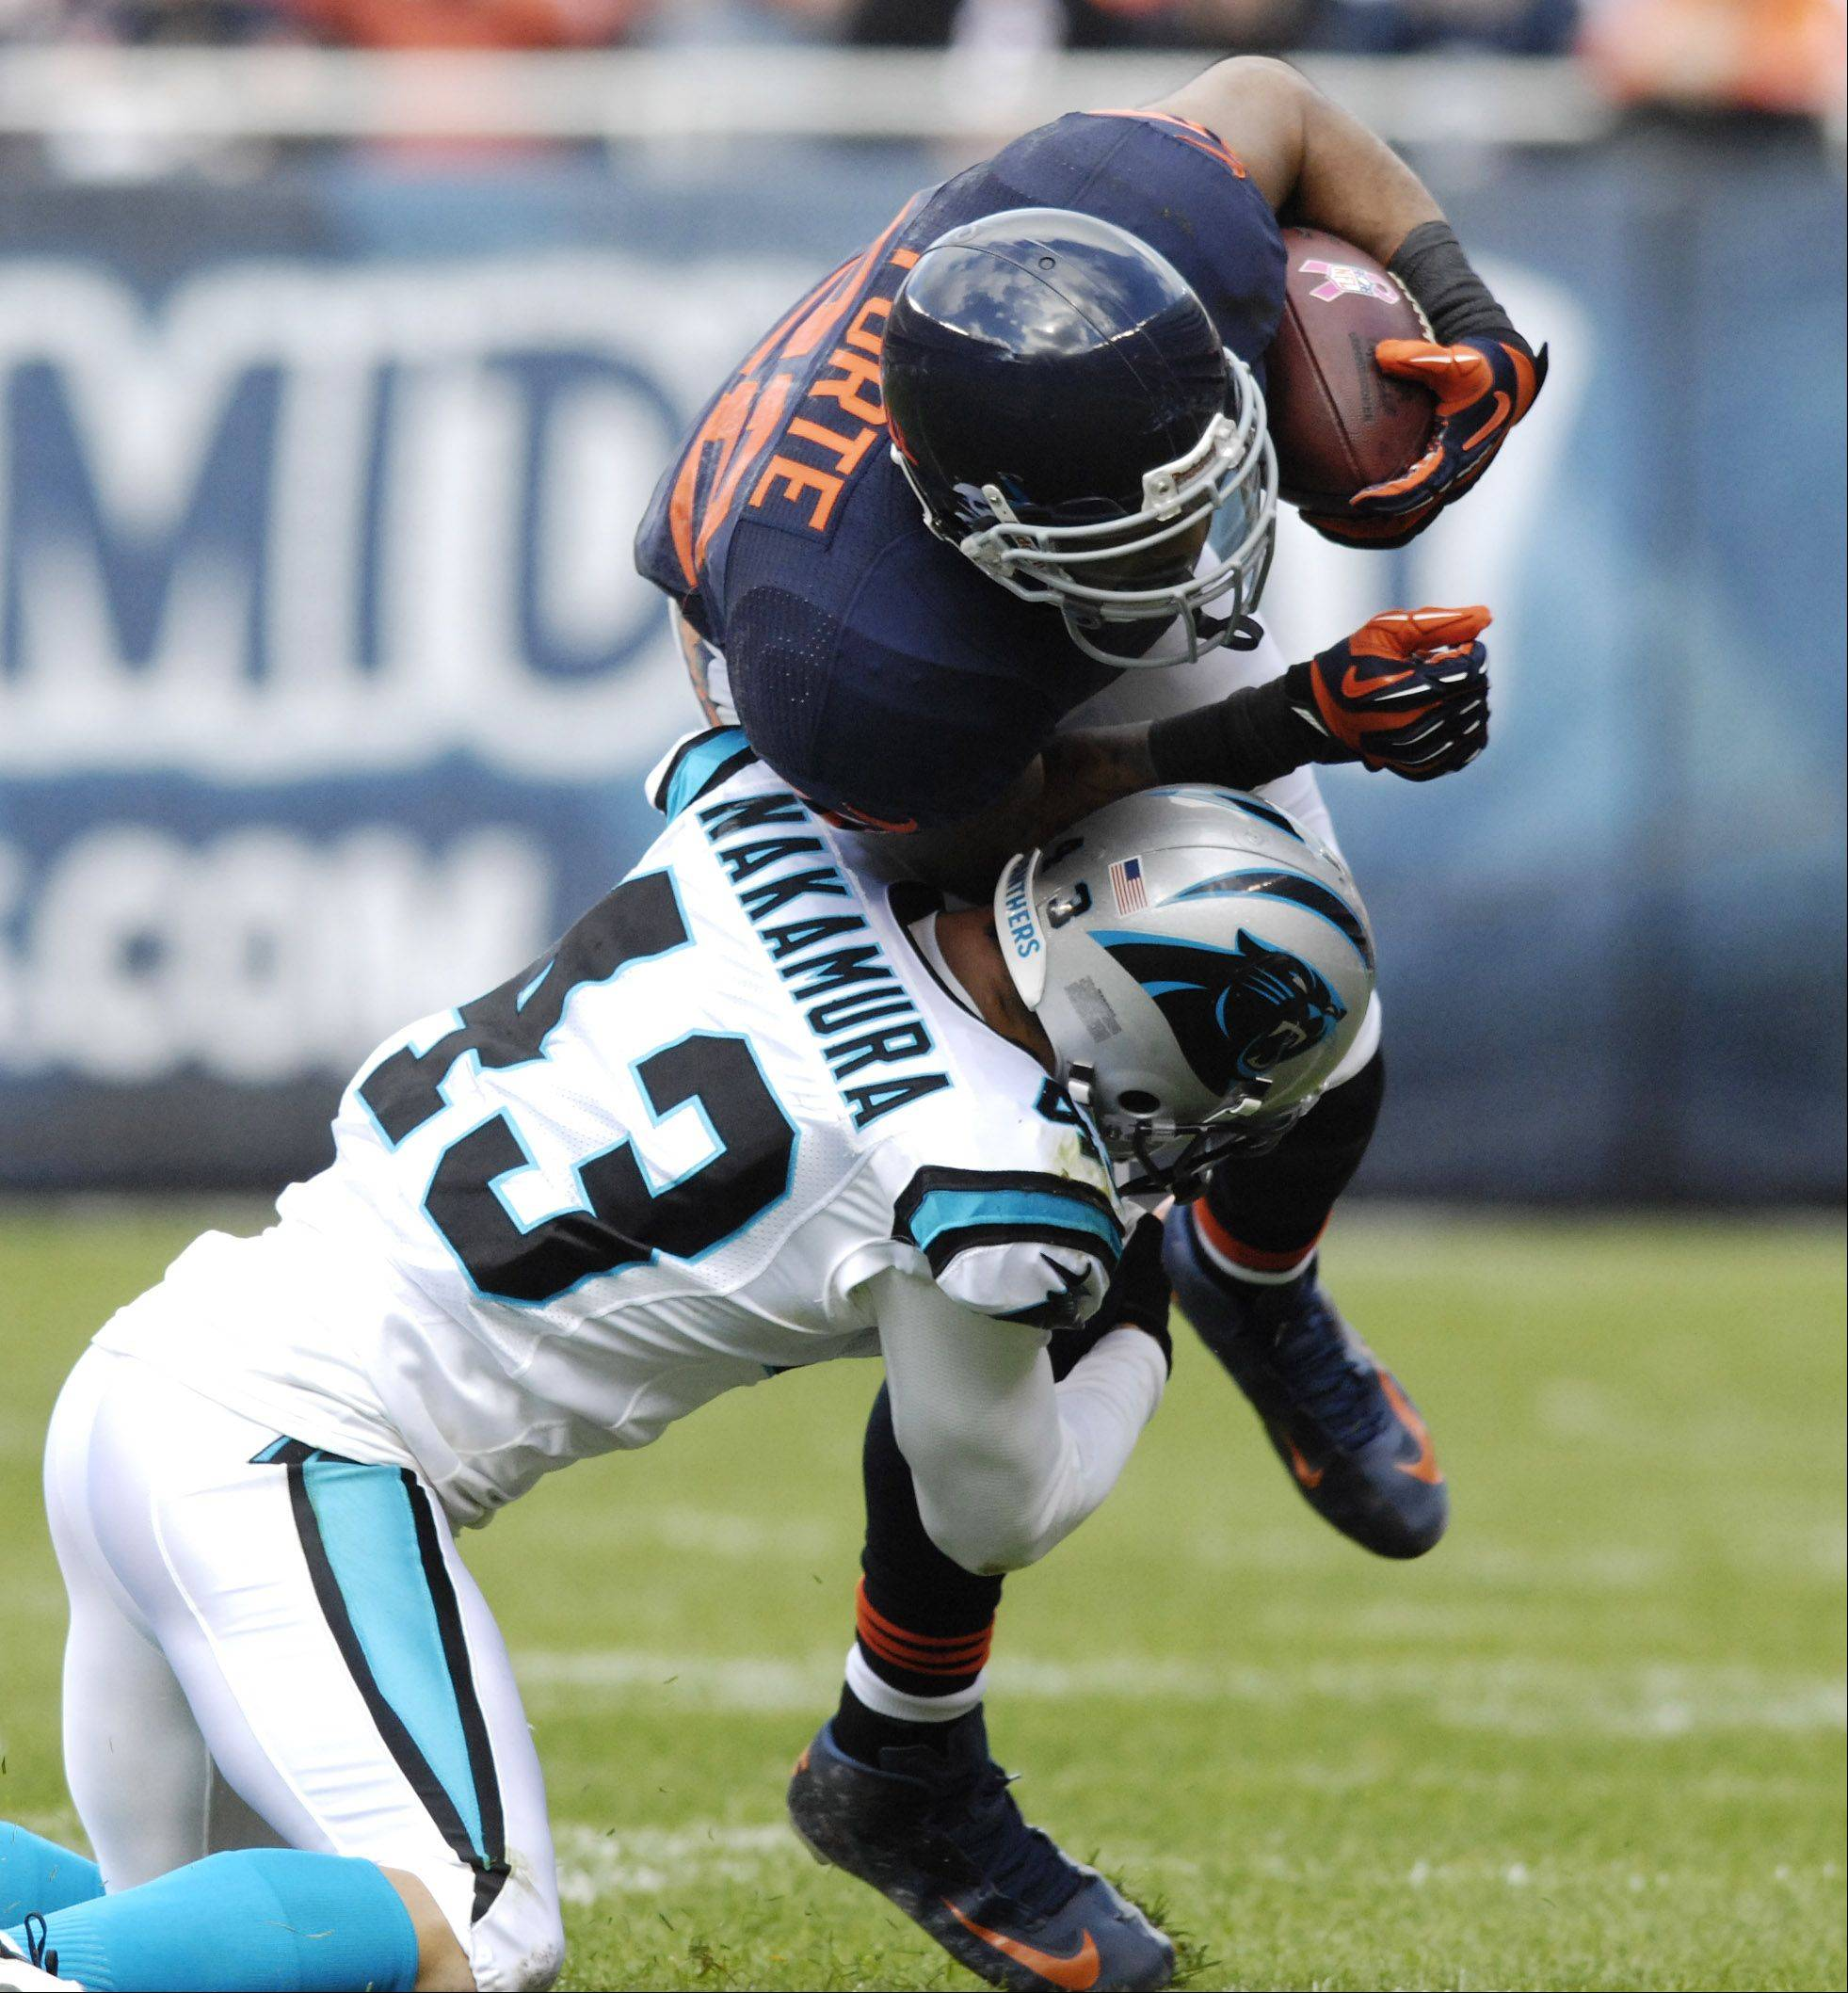 Chicago Bears running back Matt Forte is tackled by Carolina Panthers free safety Haruki Nakamura during Sunday's game at Soldier Field.